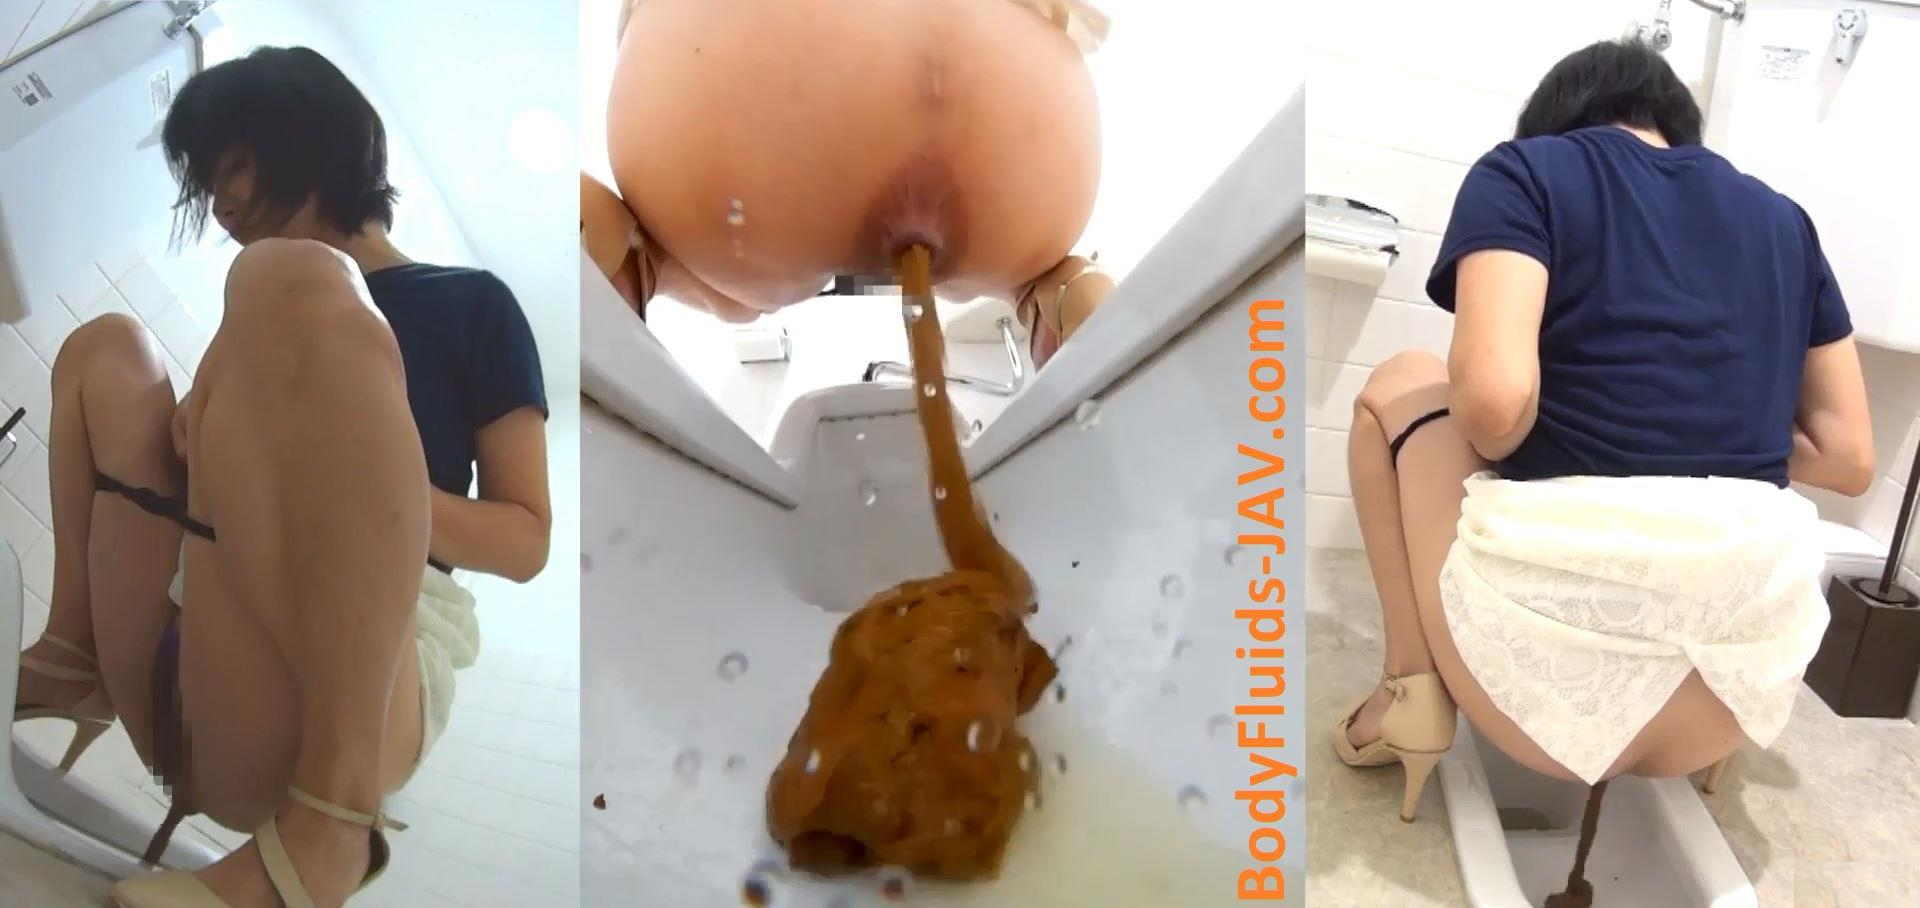 BFFF-86 Interview with girls after pooping in public toilet. (HD 1080p)